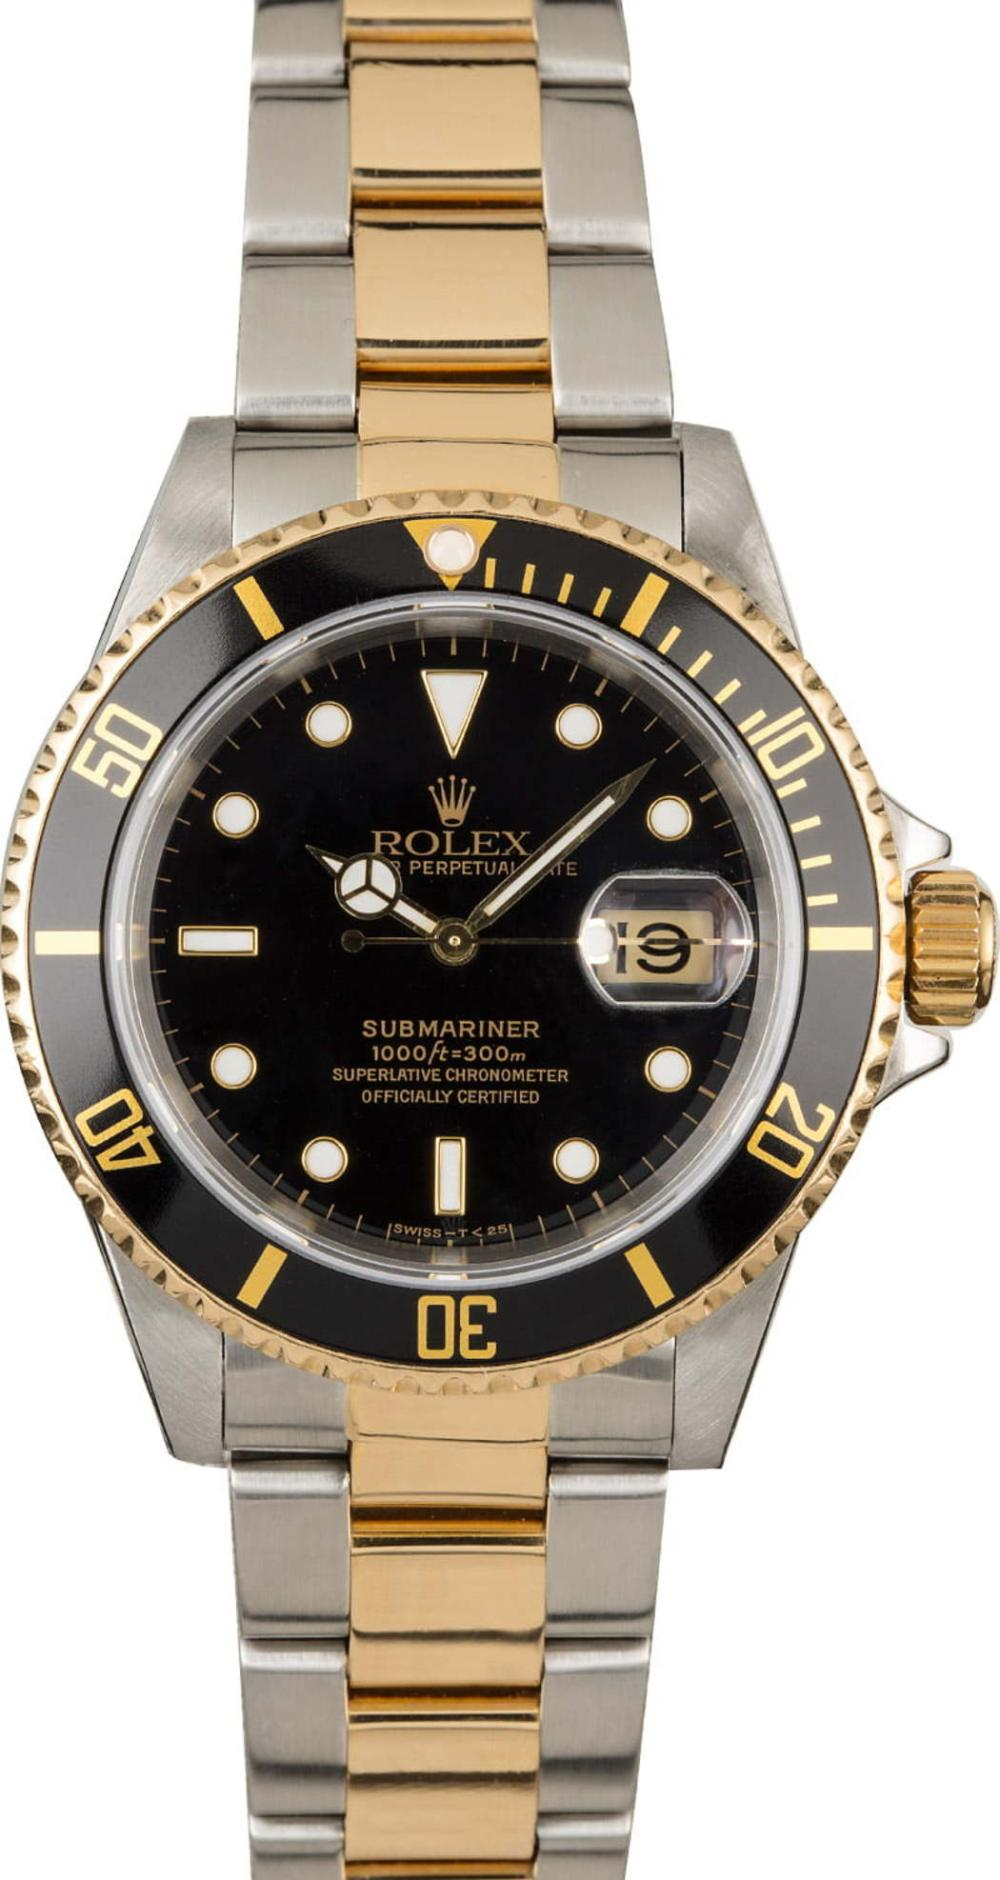 Rolex Submariner Two Tone Divers Watch